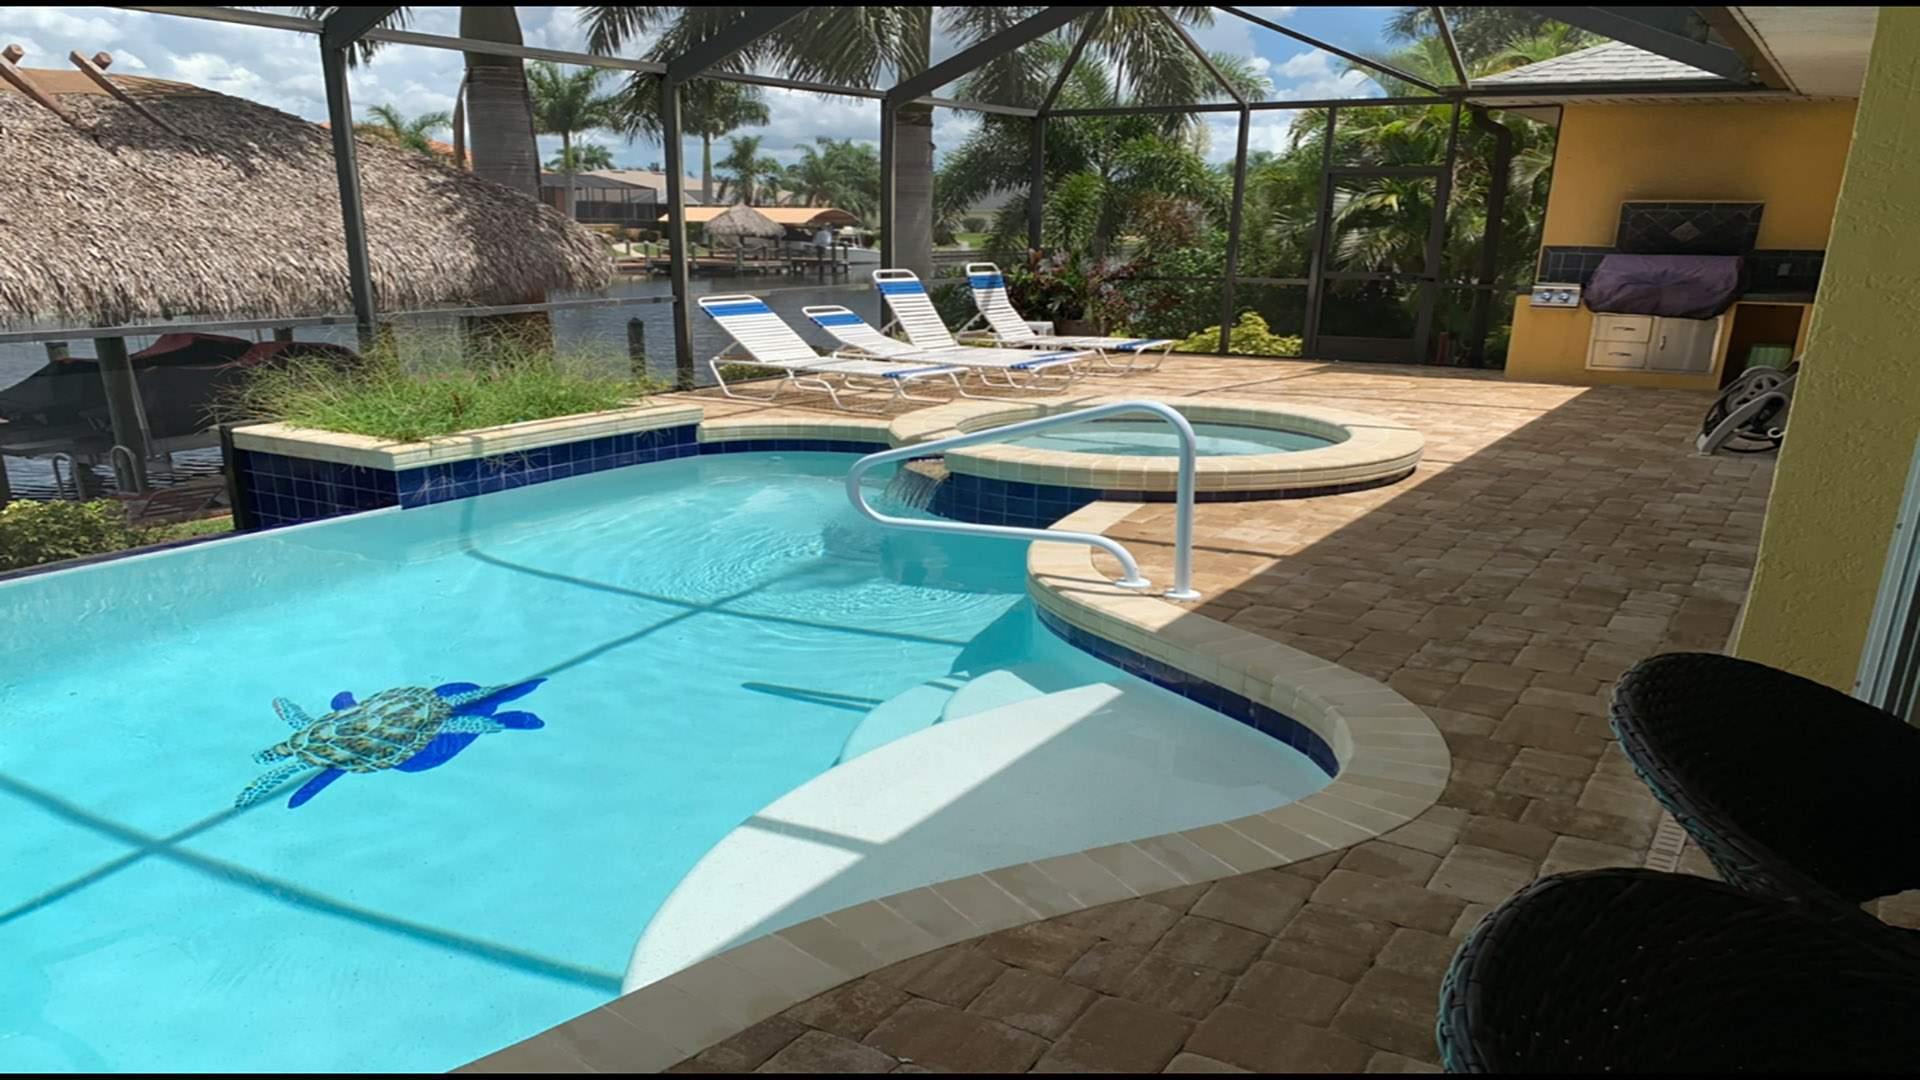 The inviting paved pool area includes a pool with vanishing edge effect